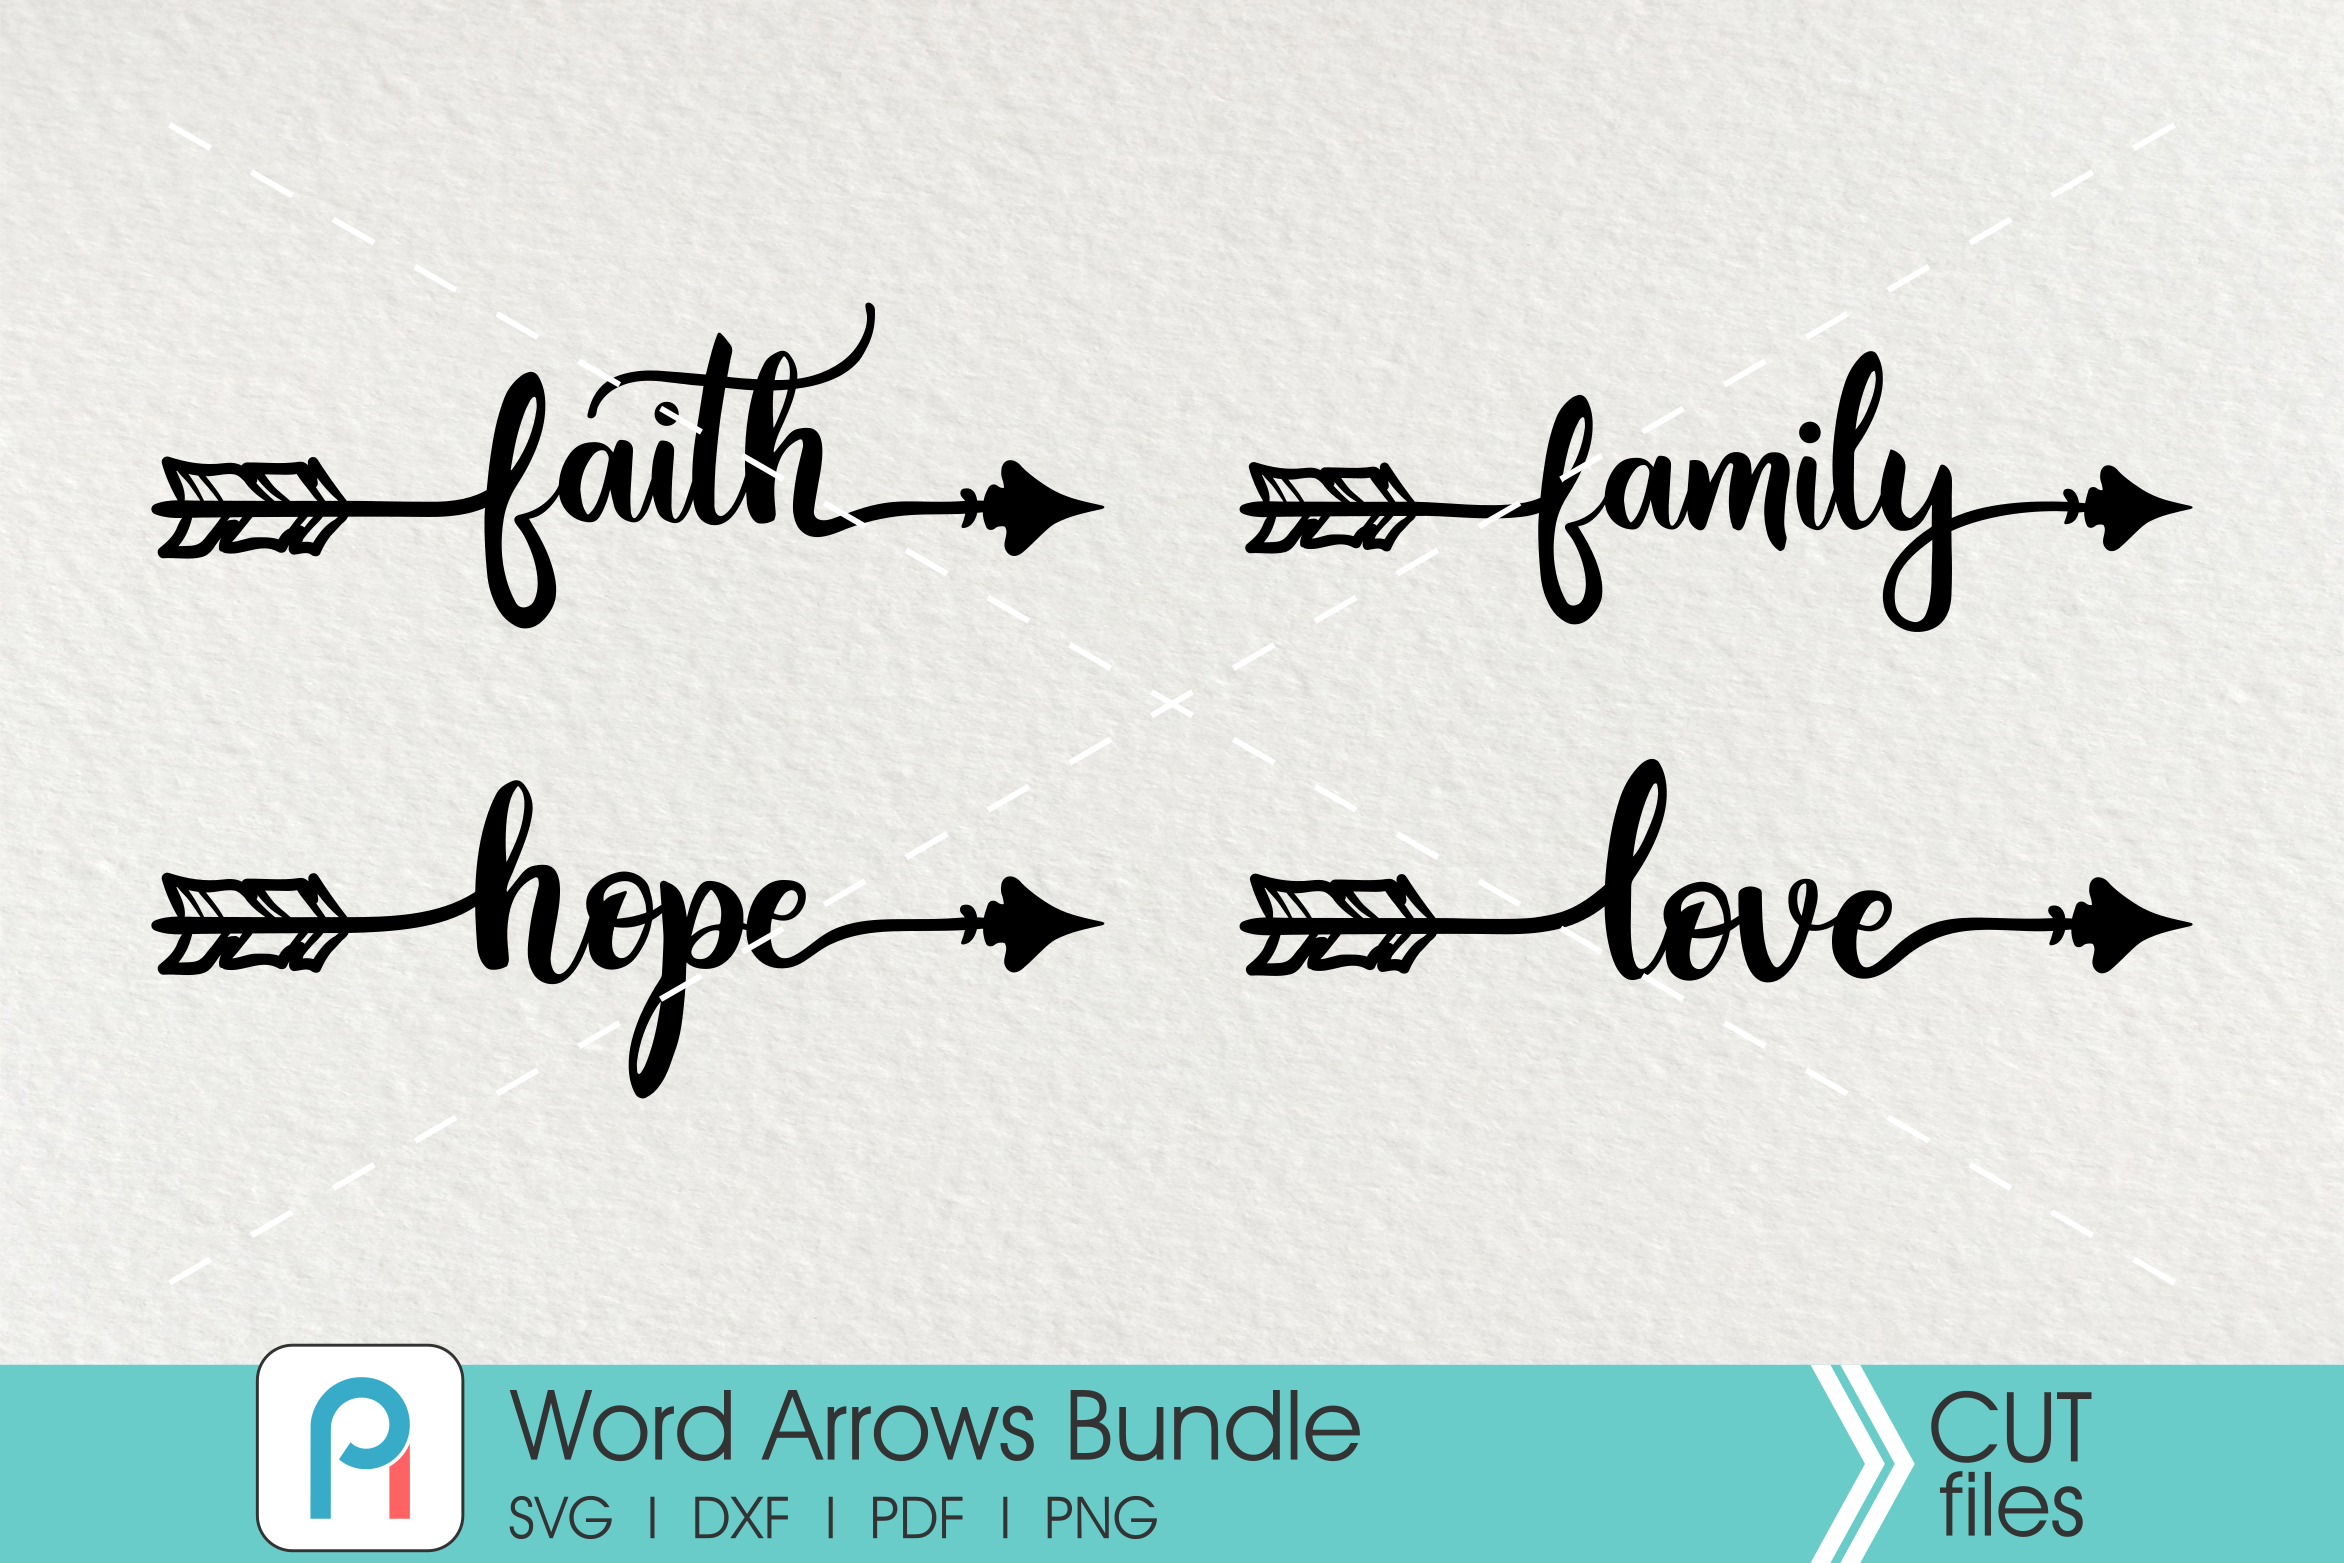 Arrow Svg Arrow Dxf File Love Svg Family Svg Faith Svg Hope Svg